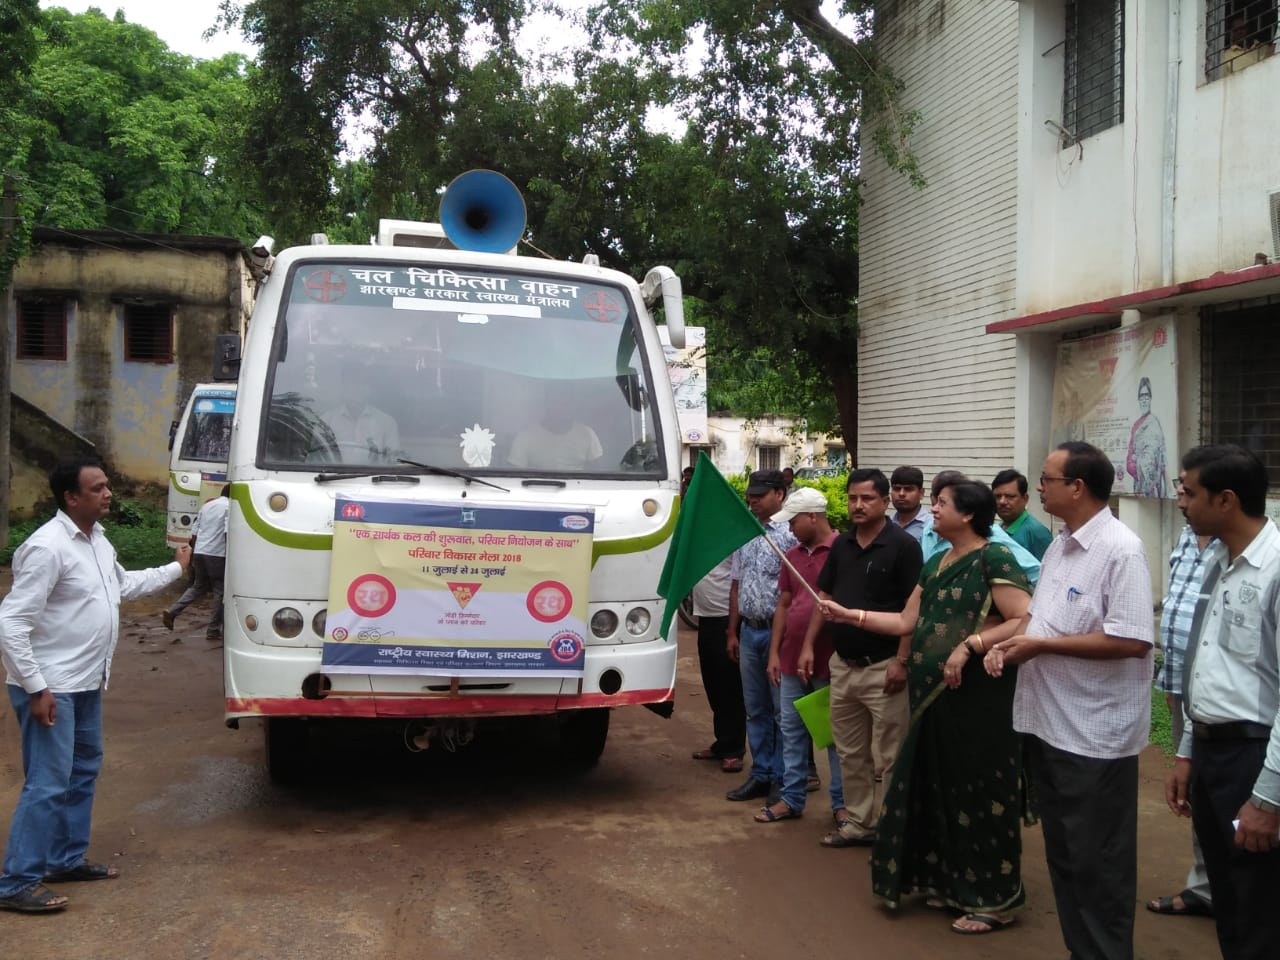 Saarthi Rath flagged-off to kick-start World Population Day 2018 day & fortnight activities in Godda district, Jharkhand.